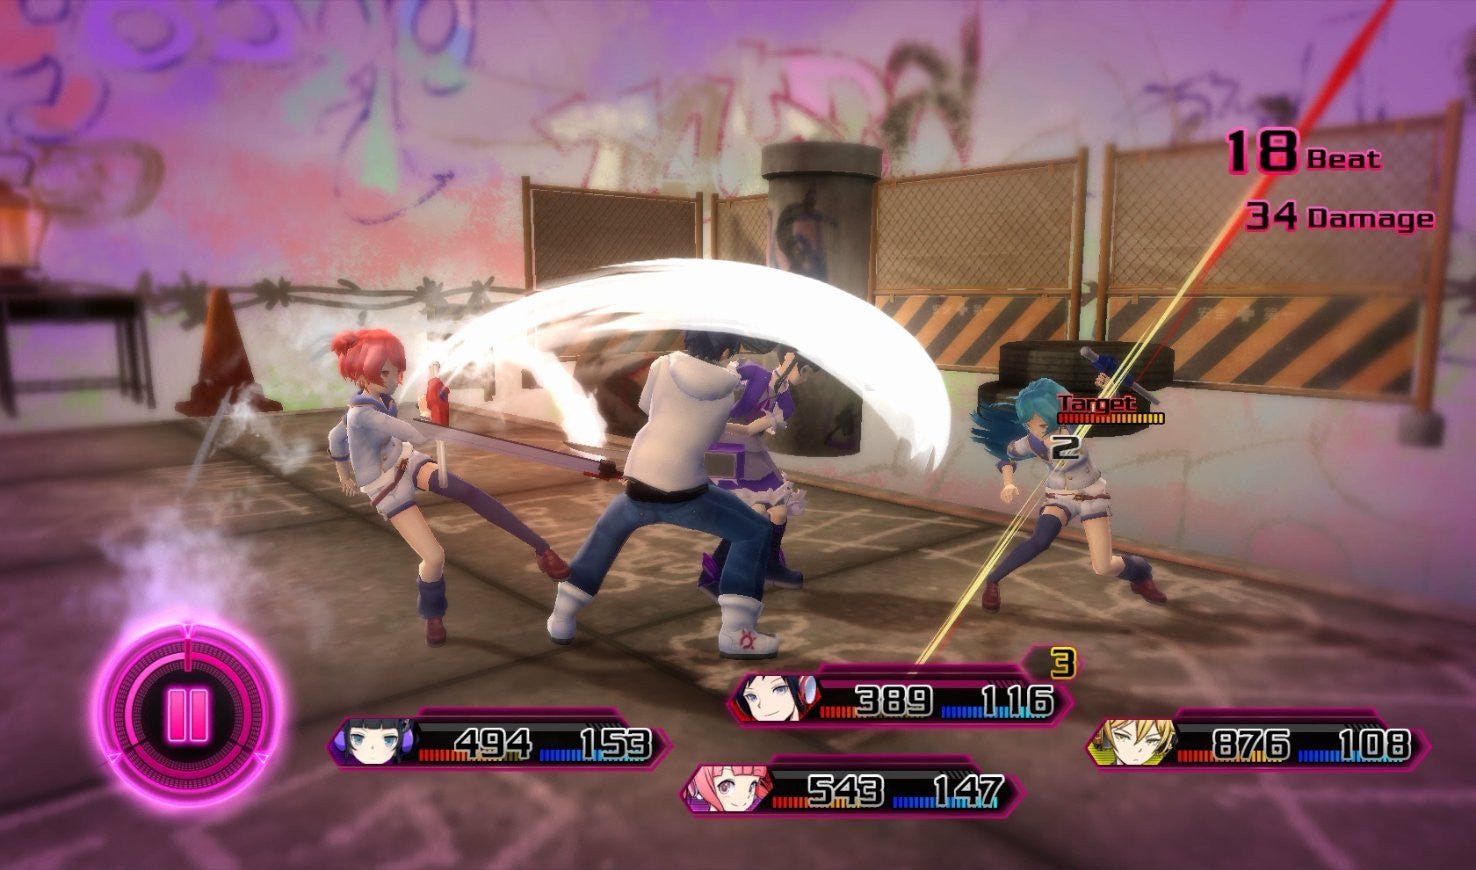 Akiba's Beat - PS4 - Video Games by pqube The Chelsea Gamer